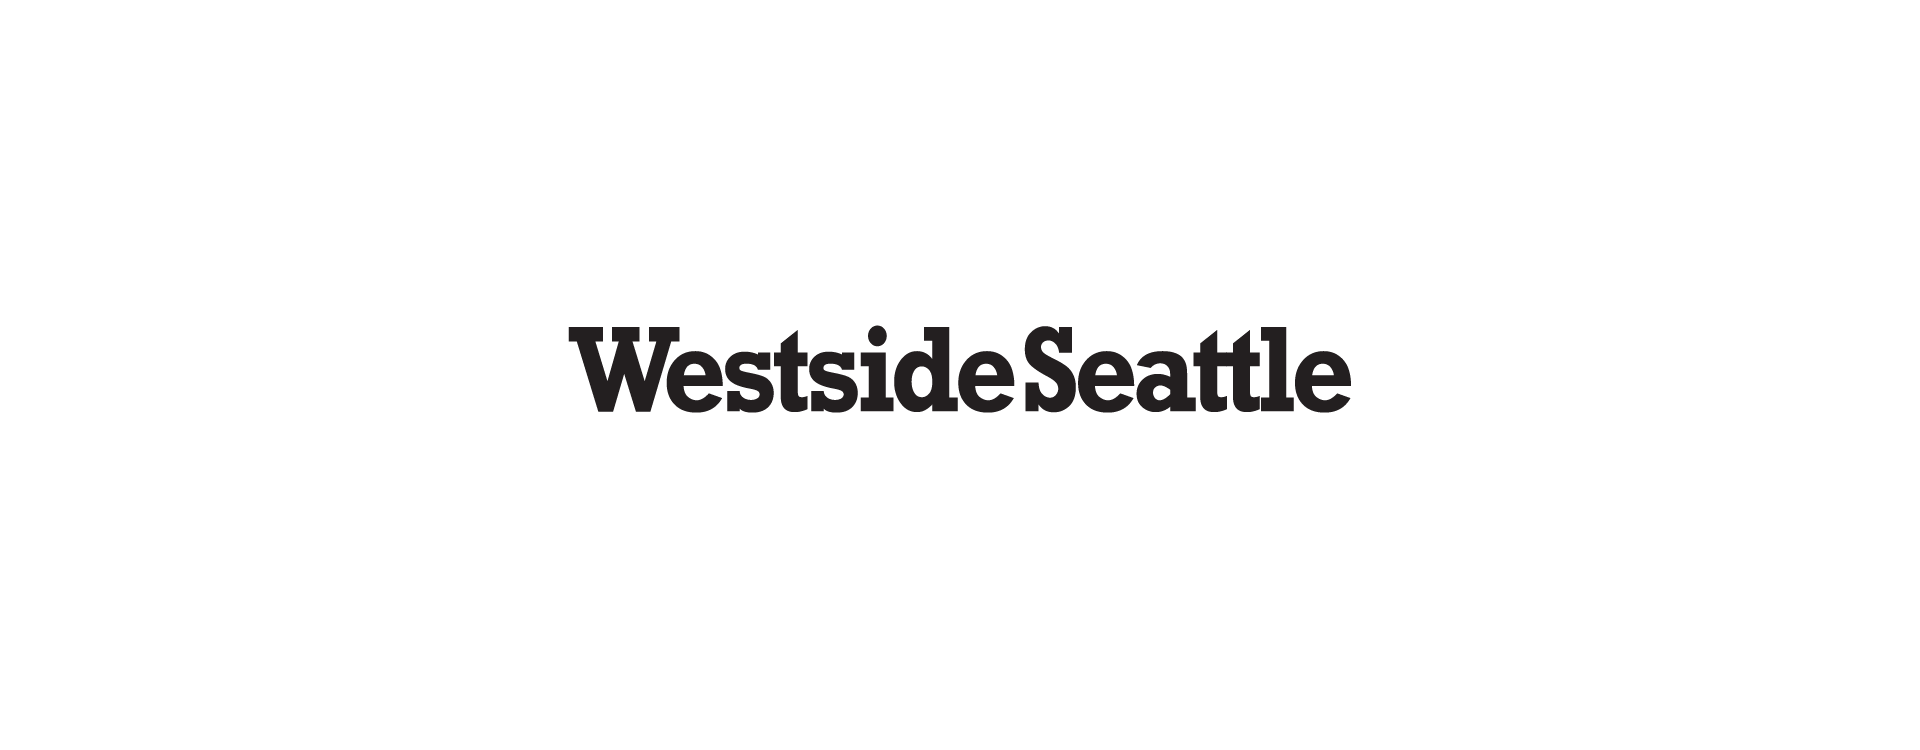 Westside Seattle